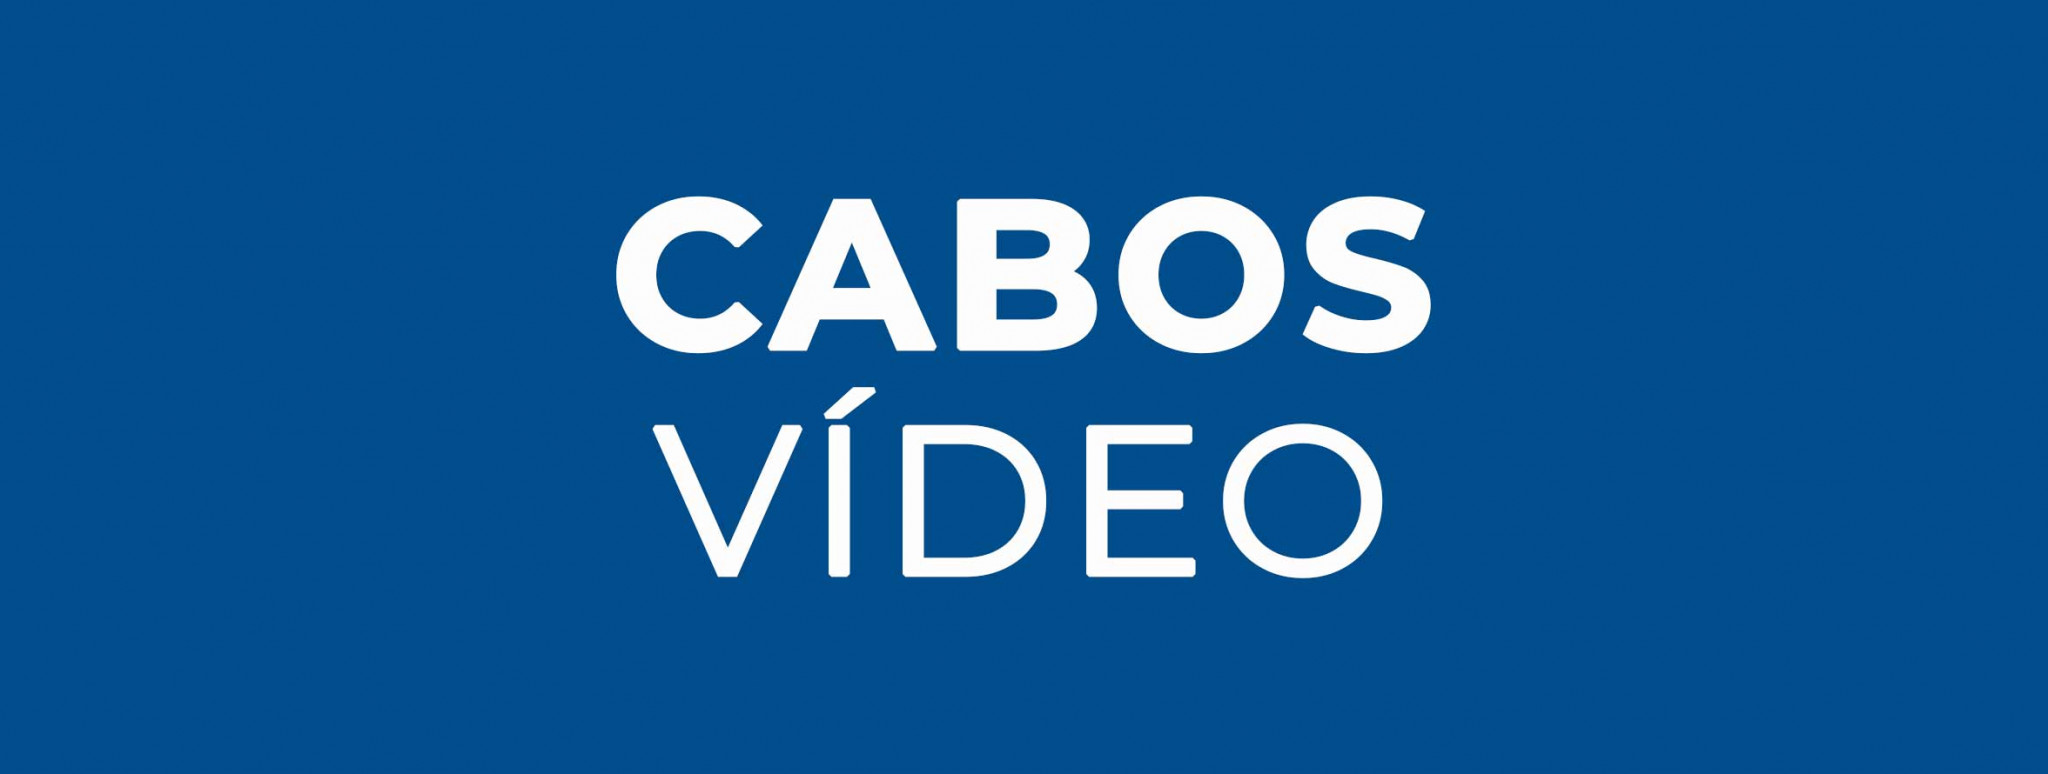 Cabos Vídeo